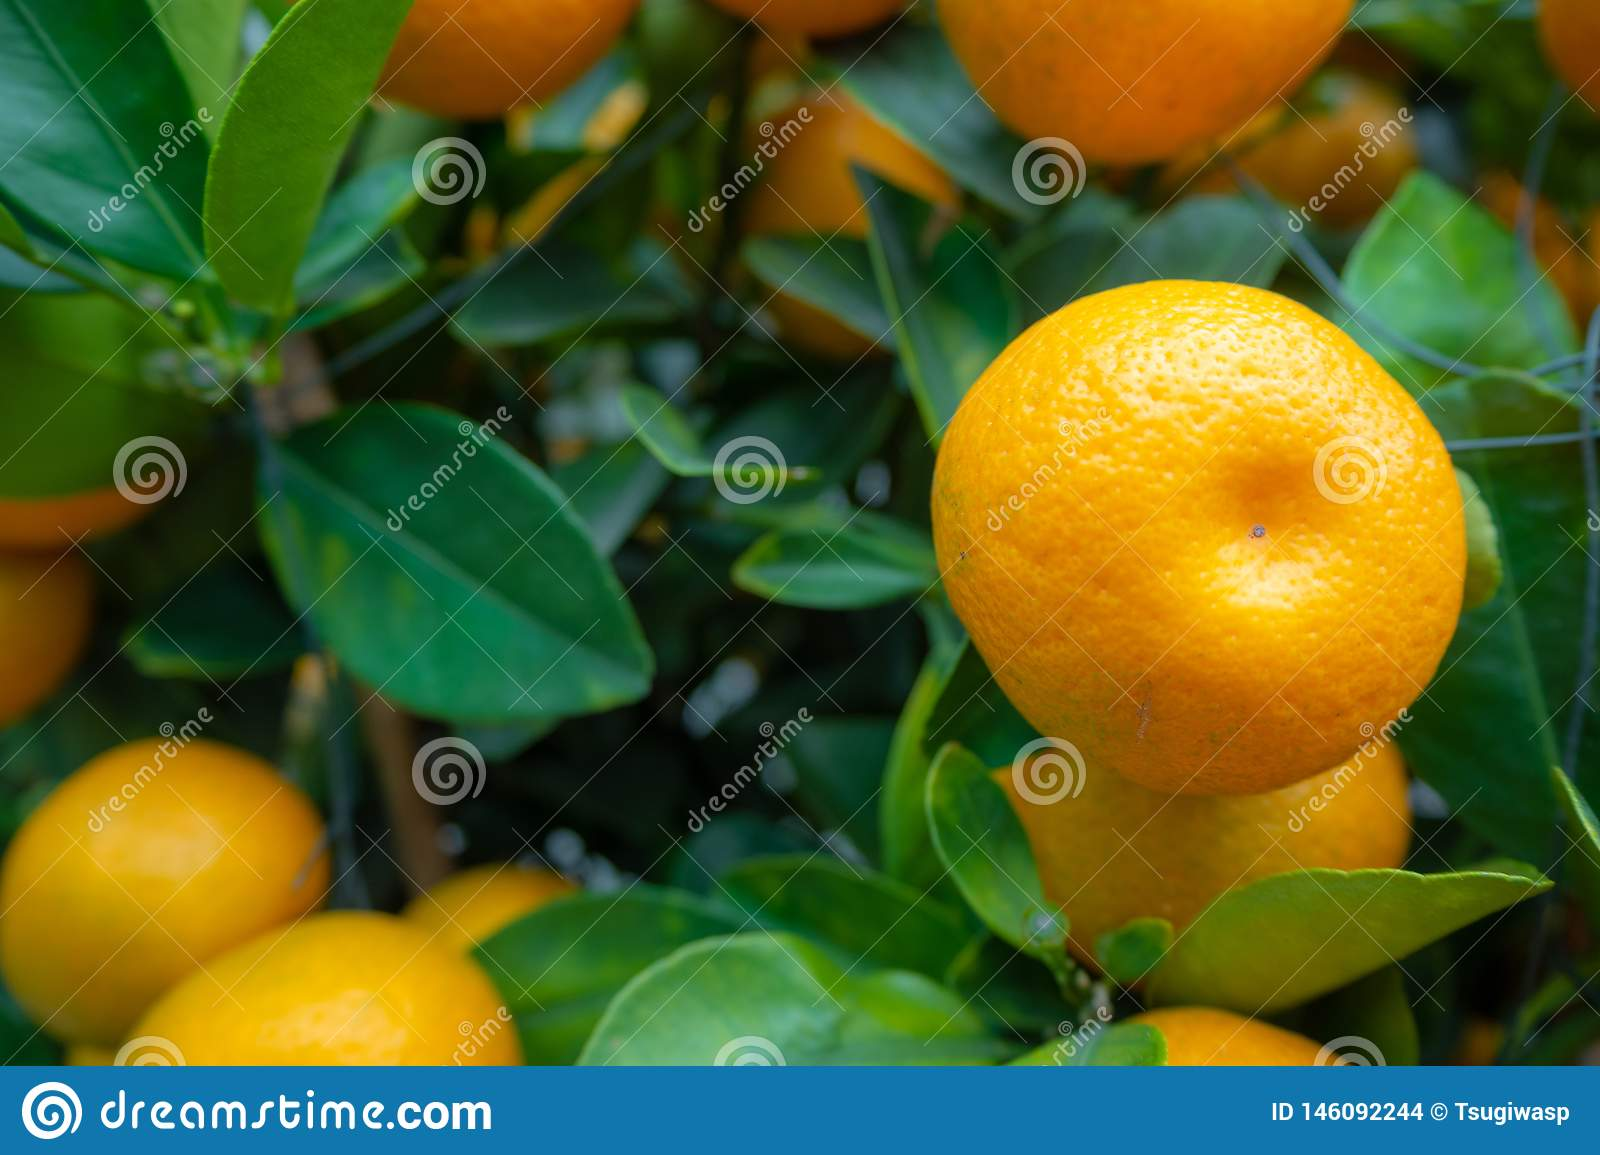 Close-up of fresh small orange on green leafs background